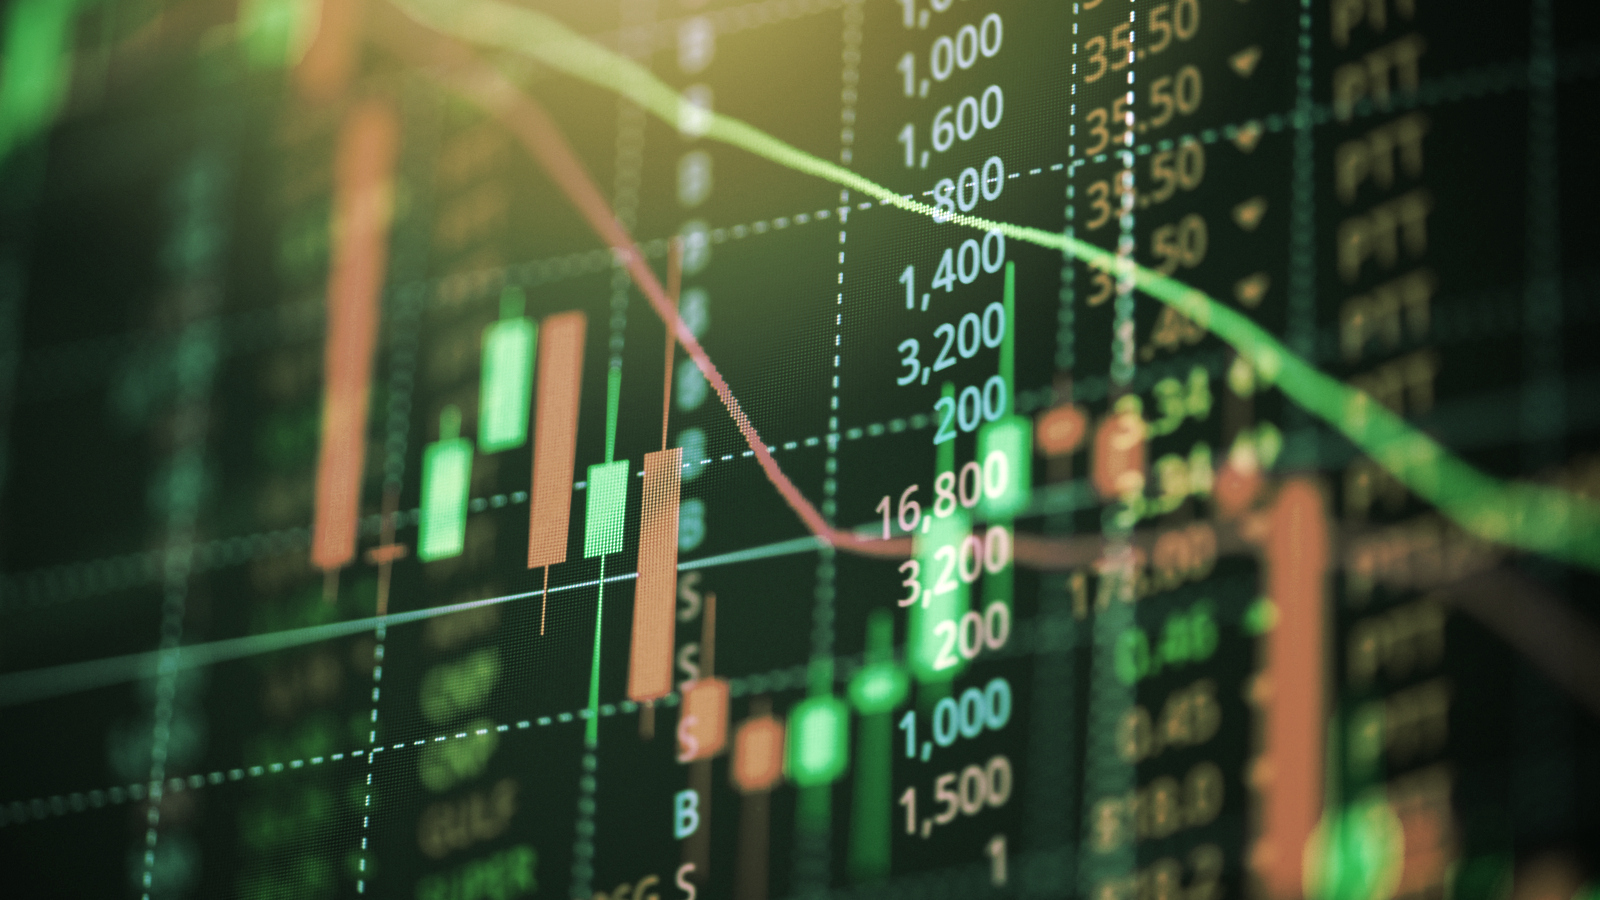 Is Bitcoin Price Correlated to the Stock Market?